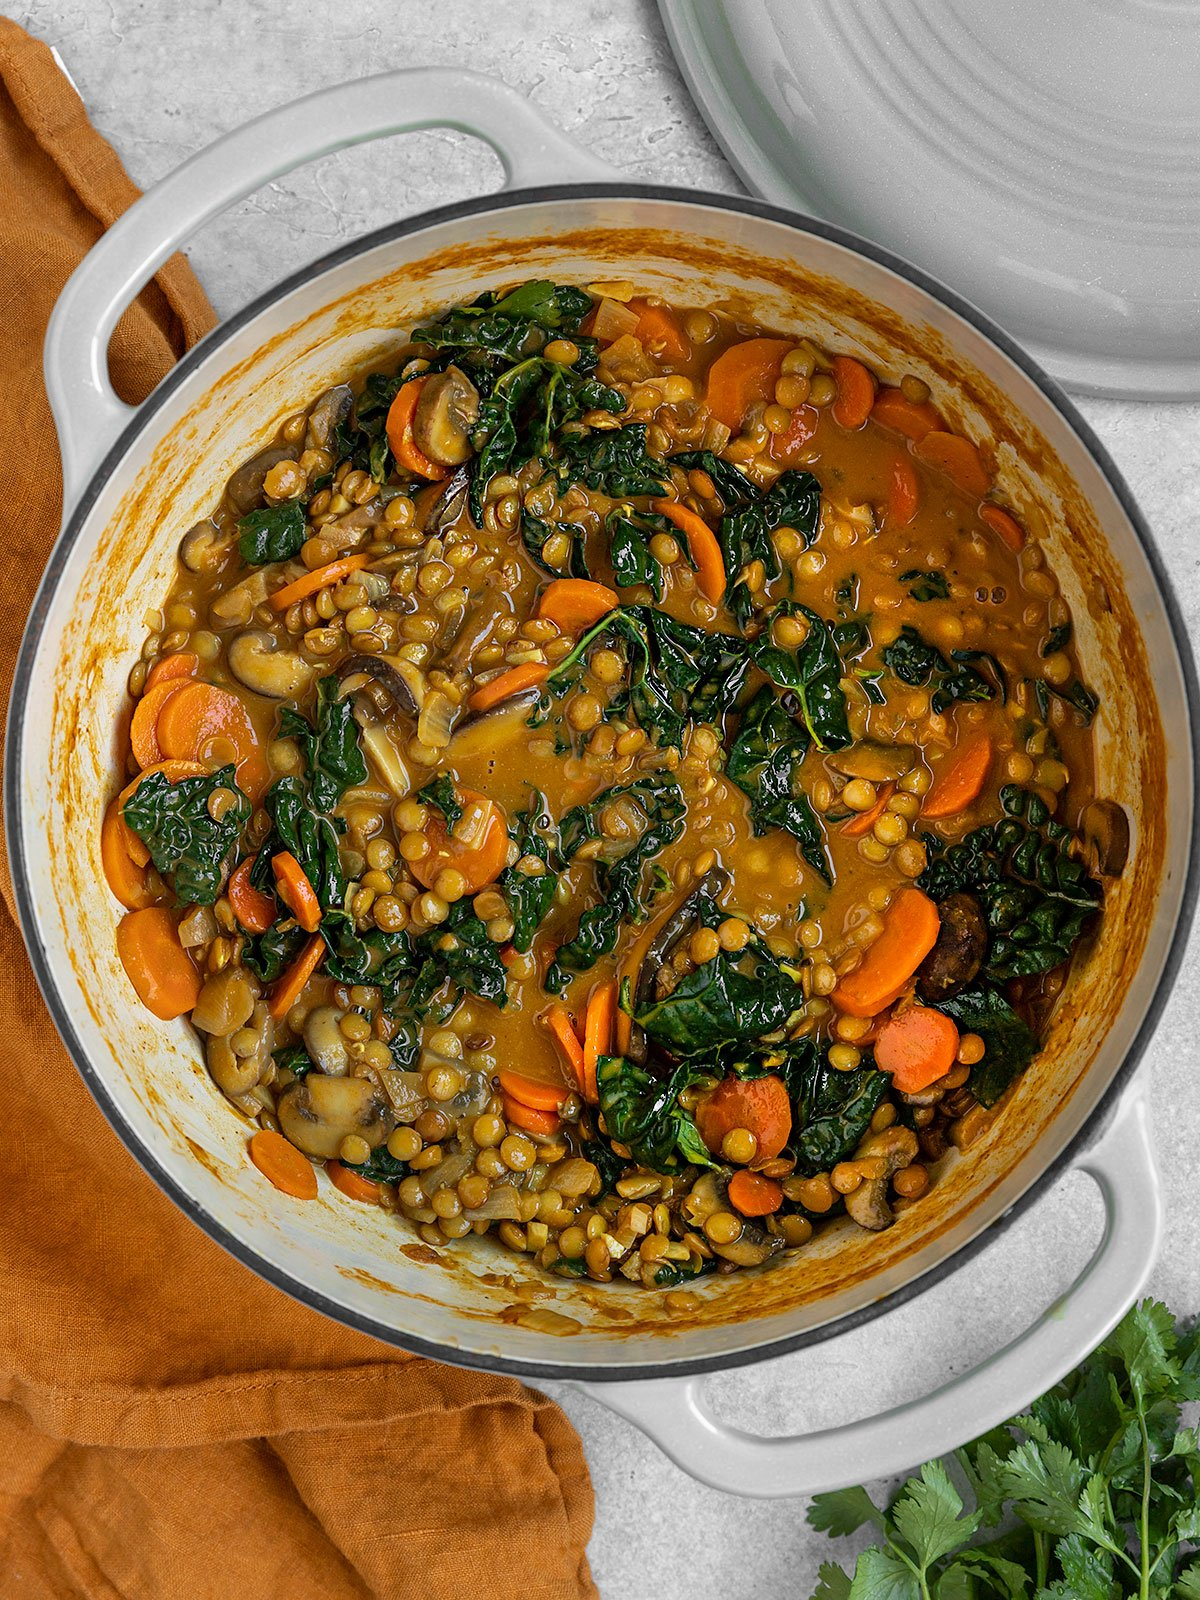 a large pot full of a brown stew with lentils, carrots, mushrooms, and kale